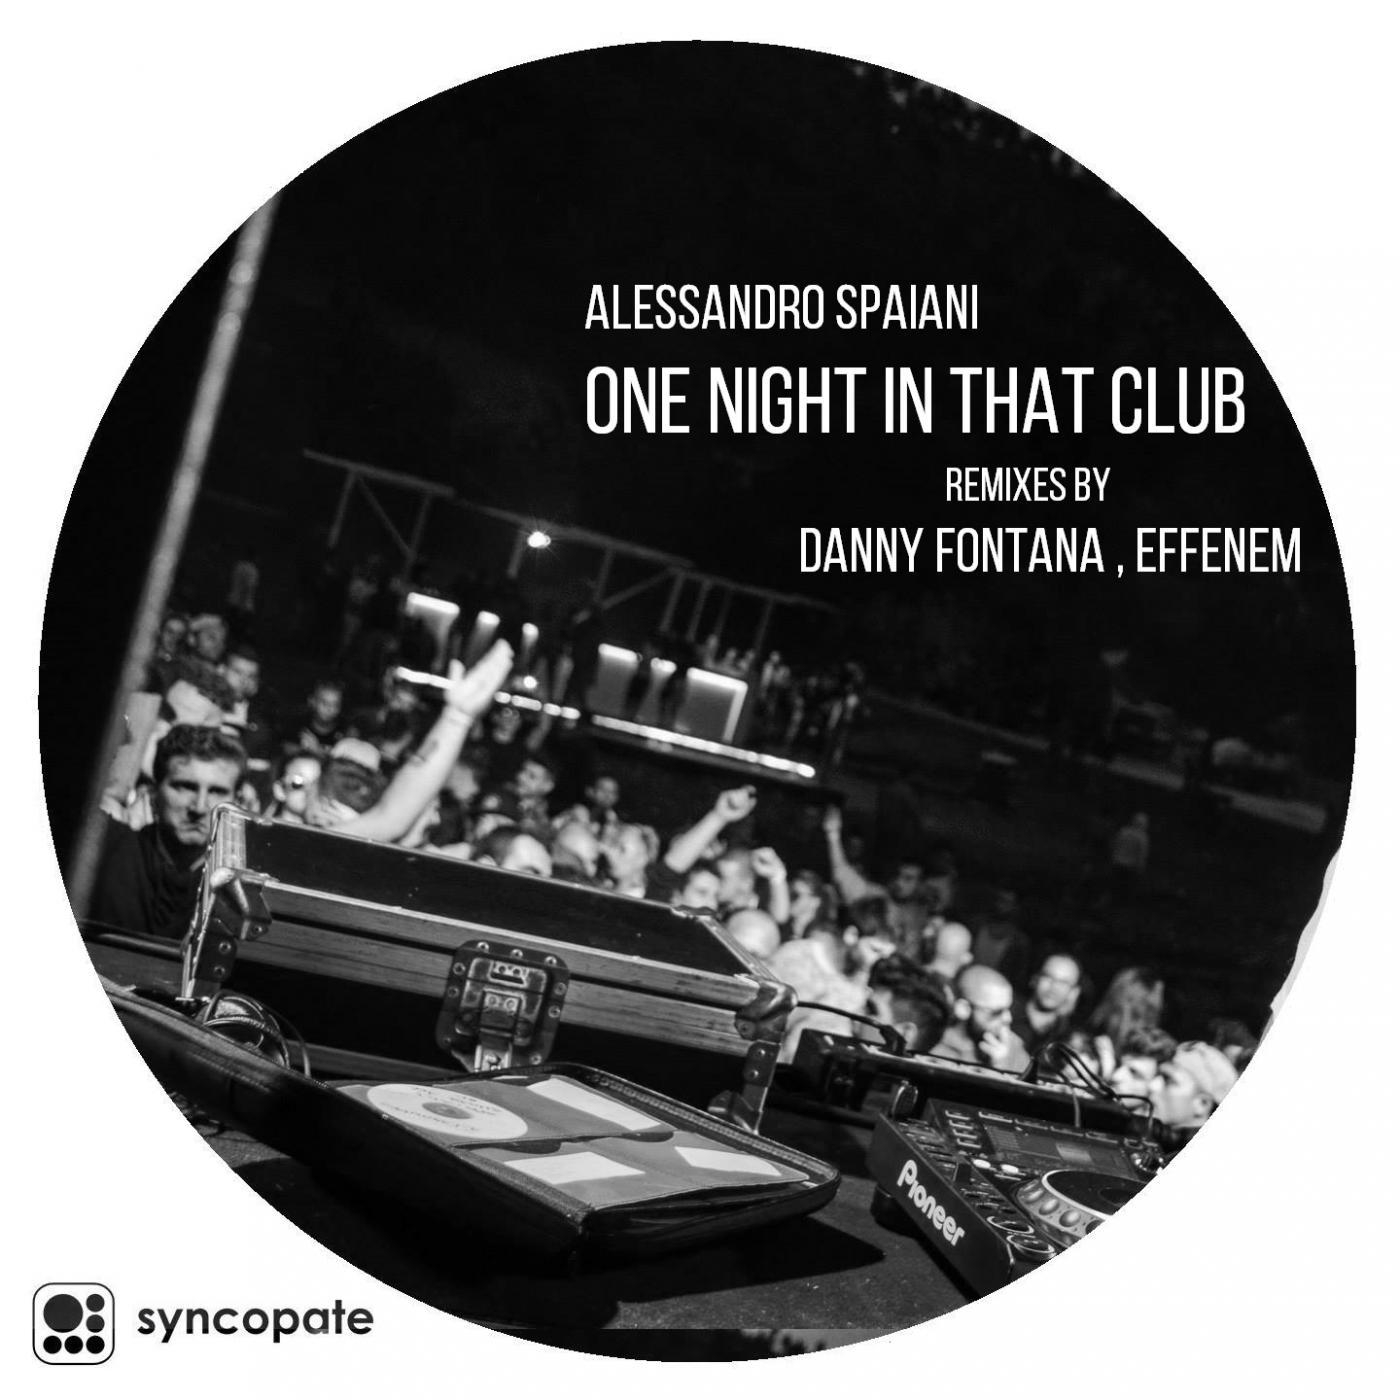 Alessandro Spaiani - One Night In That Club (Original mix)